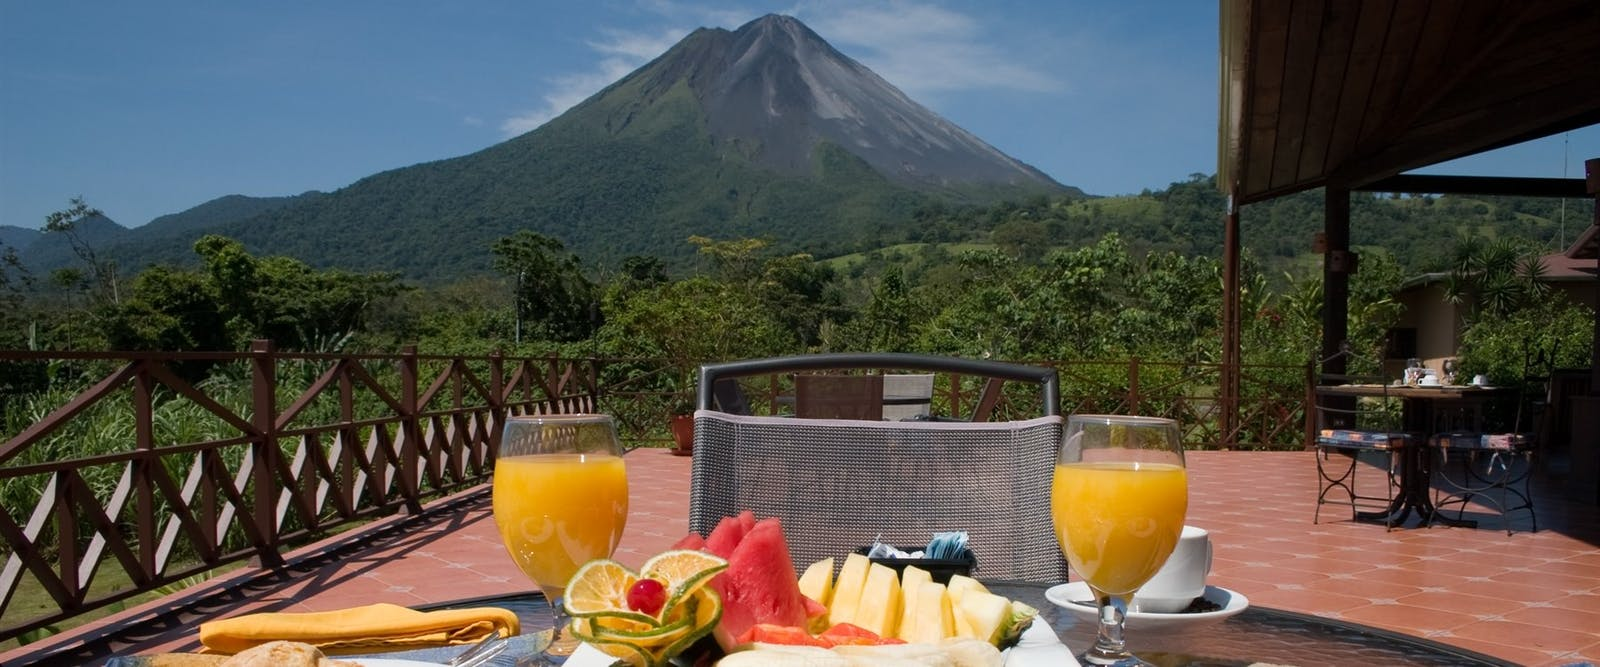 Breakfast with volcano view, Arenal Springs Resort